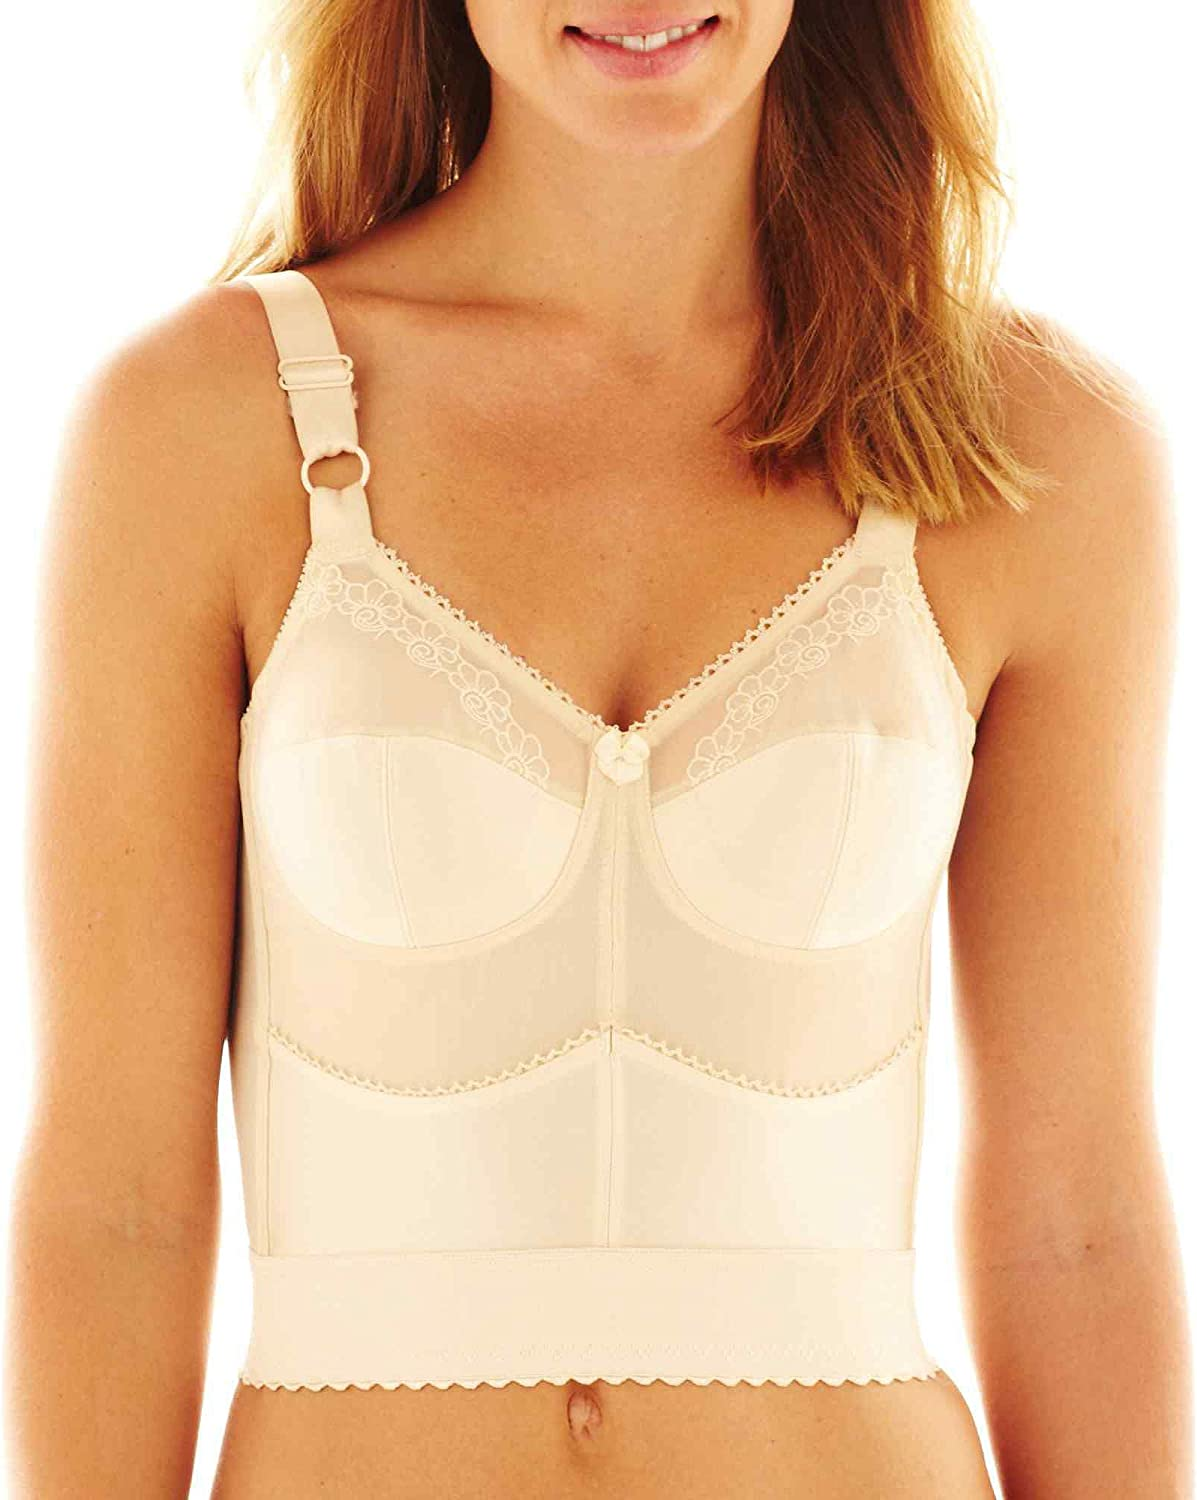 Cortland Intimates Style 7808  Embroidered Soft Cup Long Line Bra